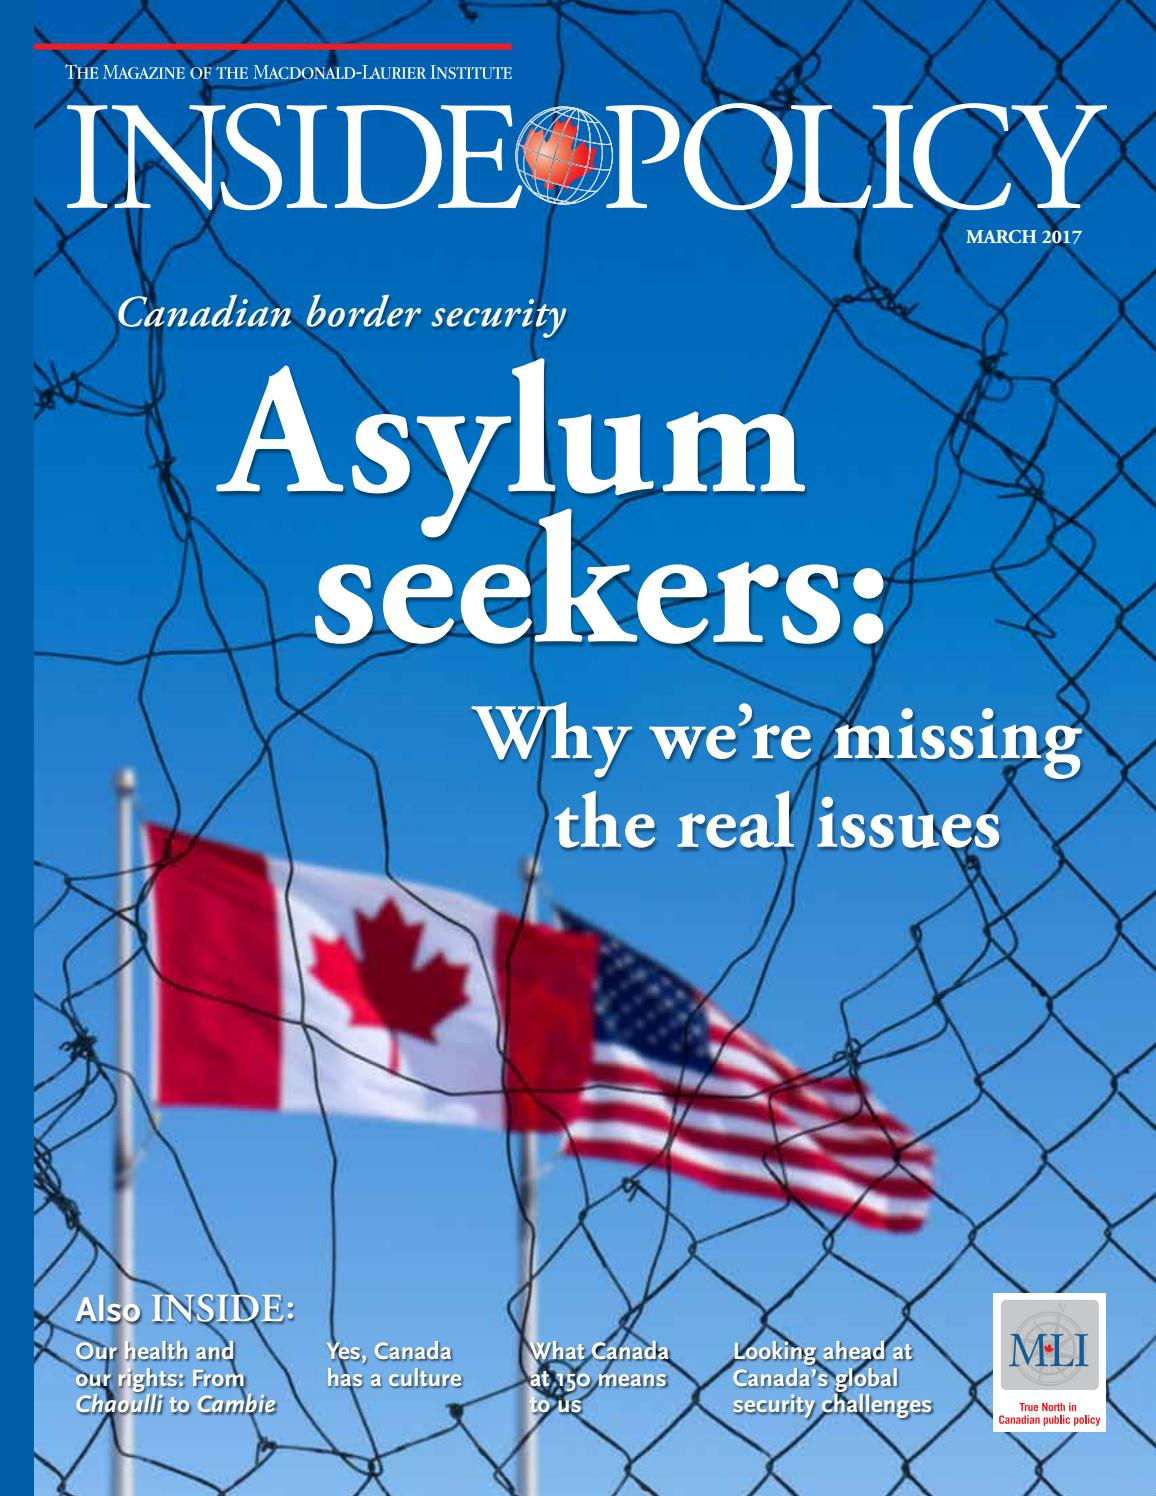 Inside Policy March 2017: Why we're missing the real issues on